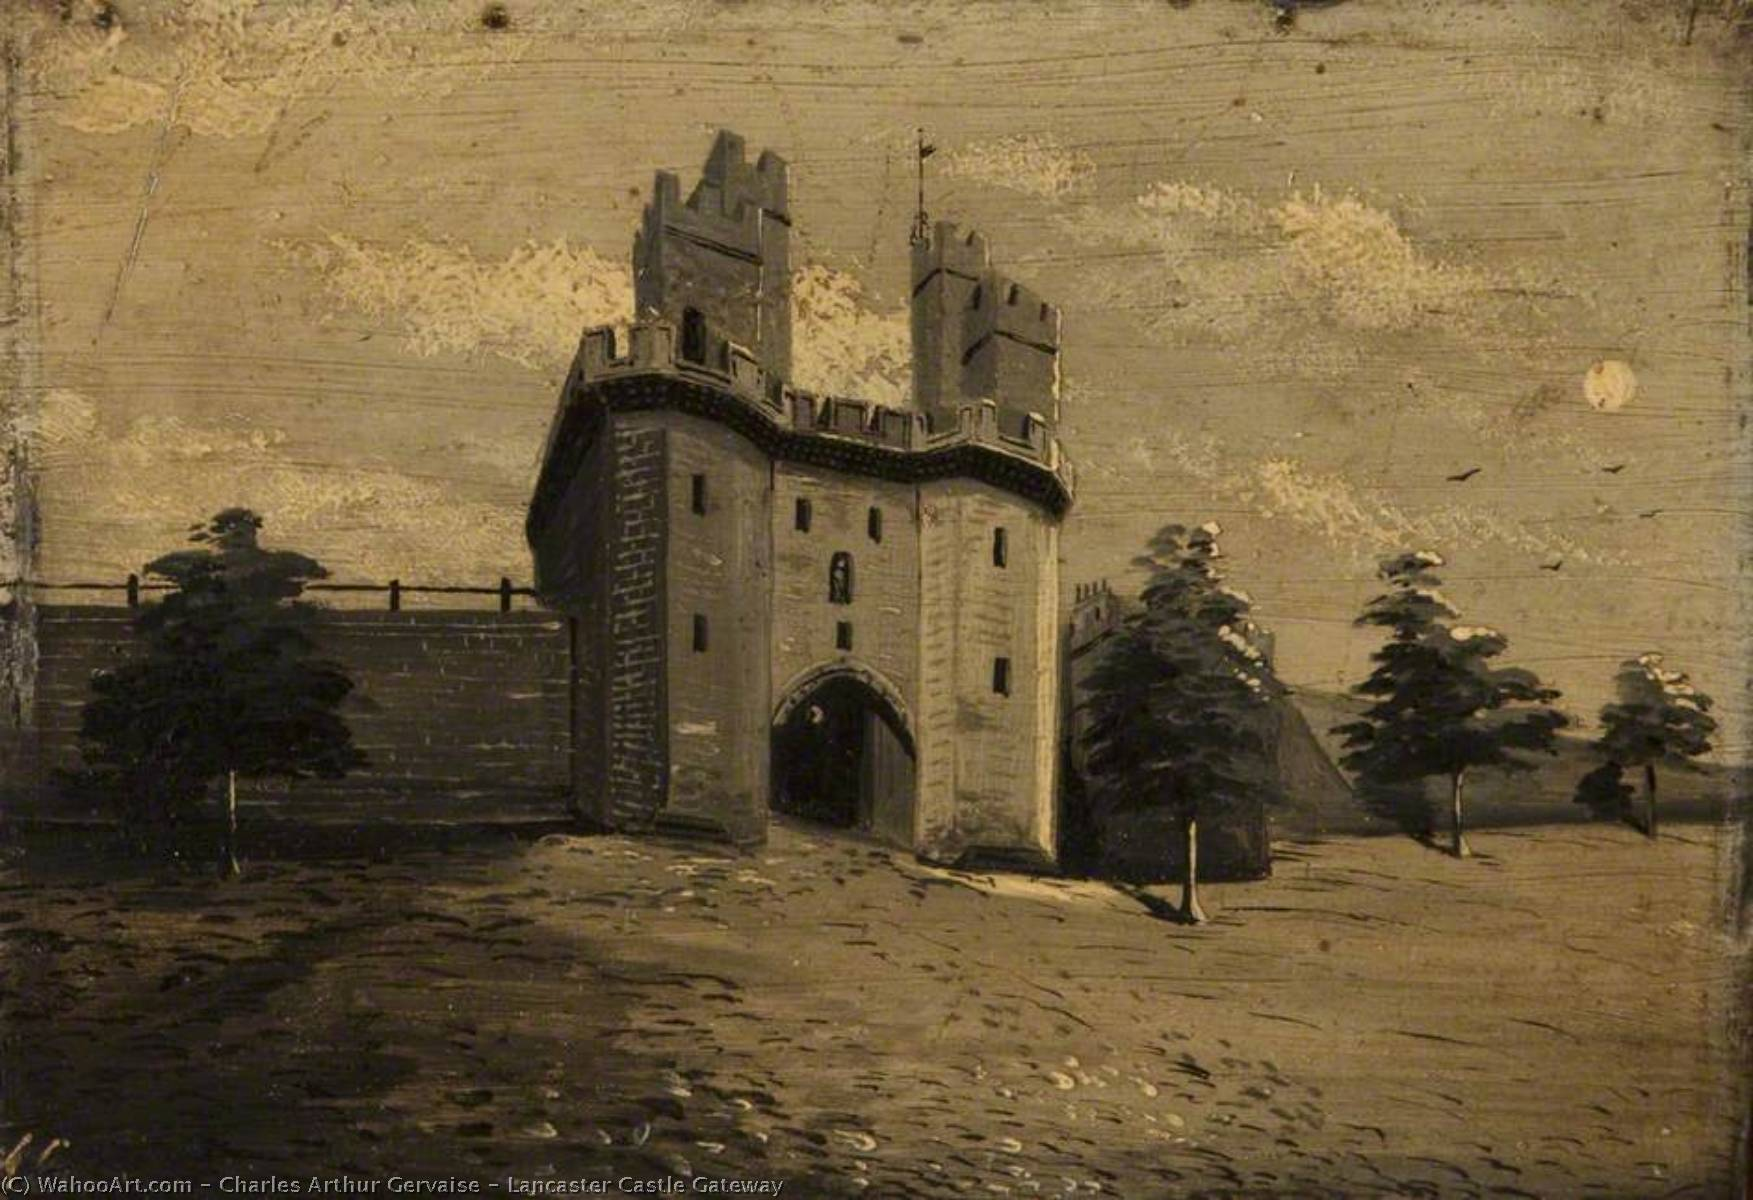 Lancaster Castle Gateway, 1874 by Charles Arthur Gervaise | Museum Art Reproductions Charles Arthur Gervaise | WahooArt.com